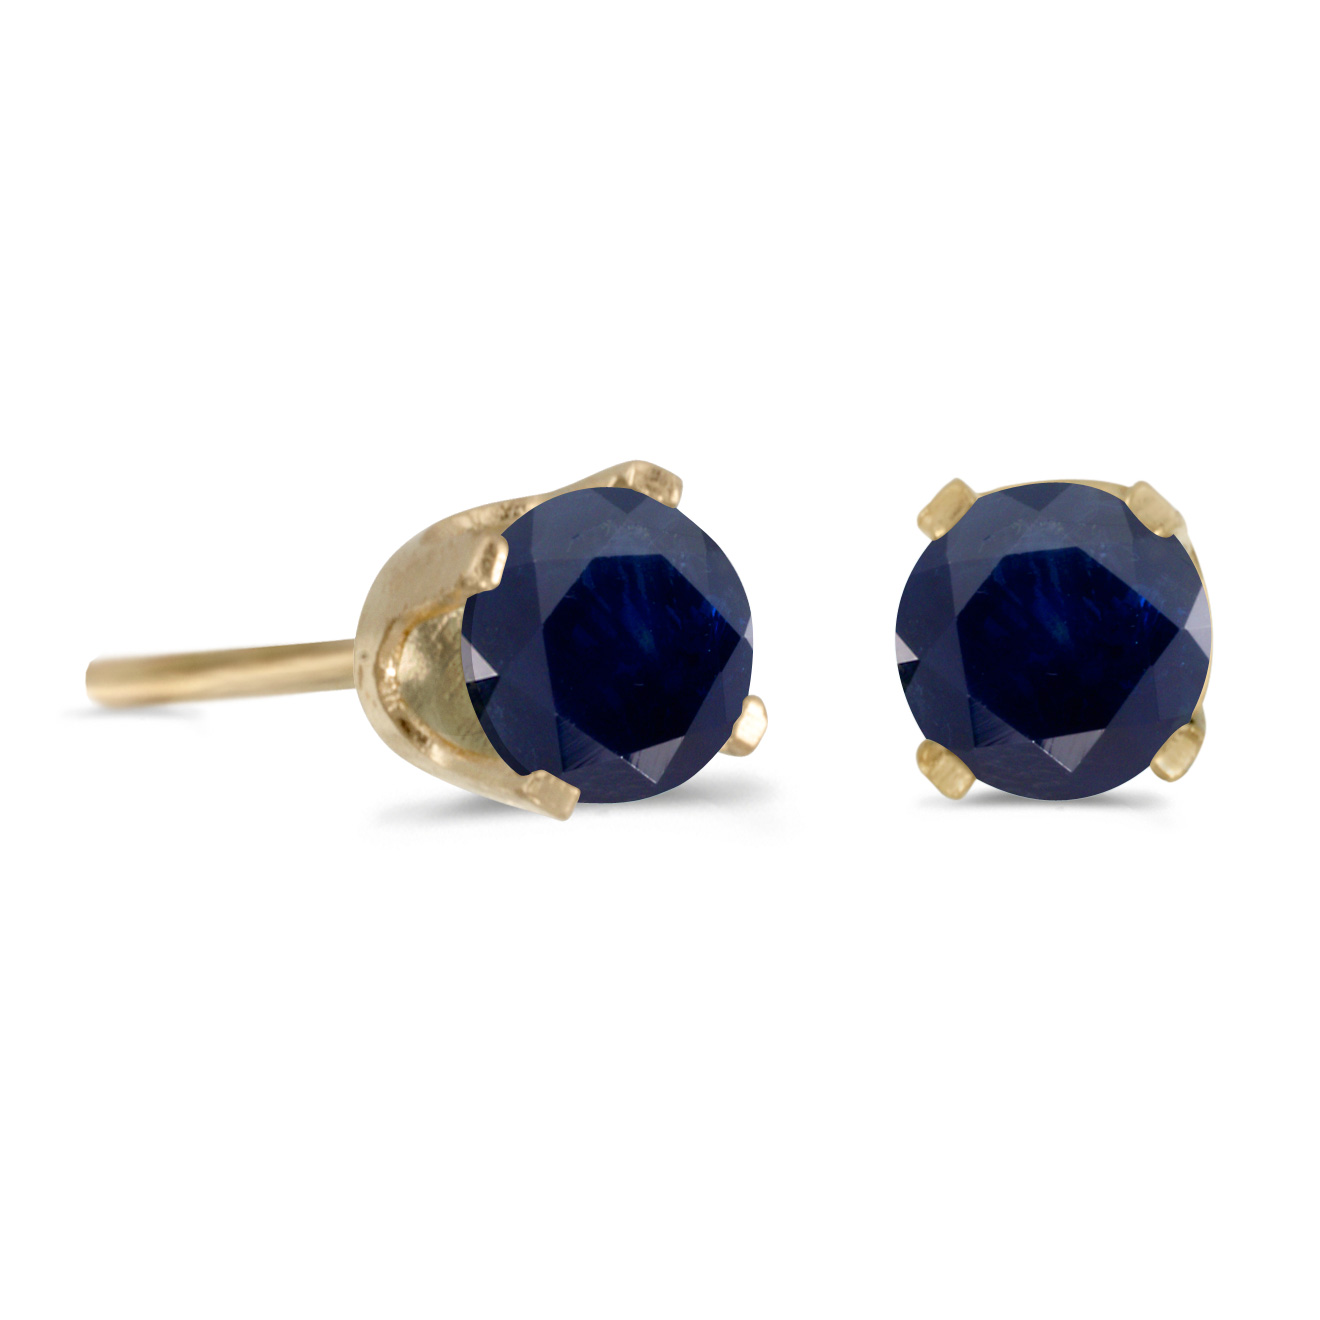 14k Yellow Gold 4 mm Round Sapphire Stud Earrings